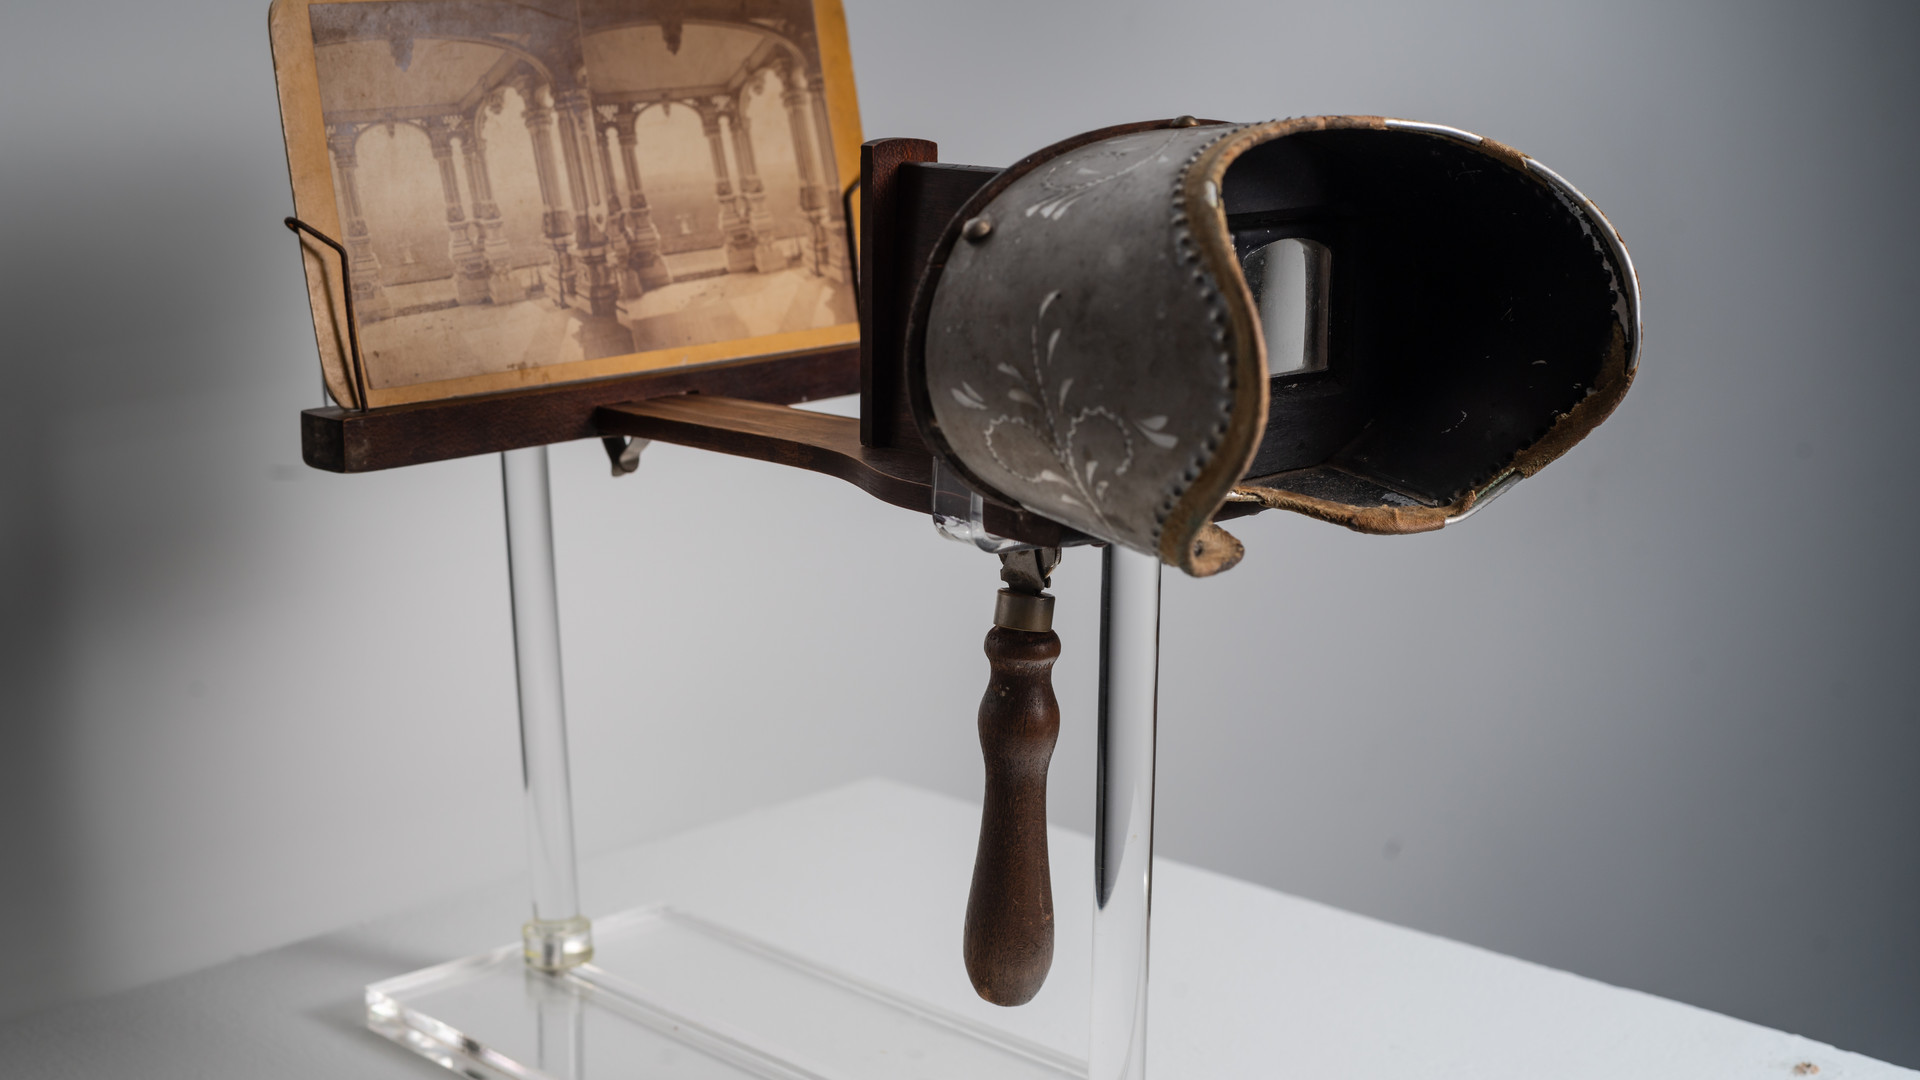 Stereoscope with Stereoscope Slide of P.T. Barnum's Home, date unknown